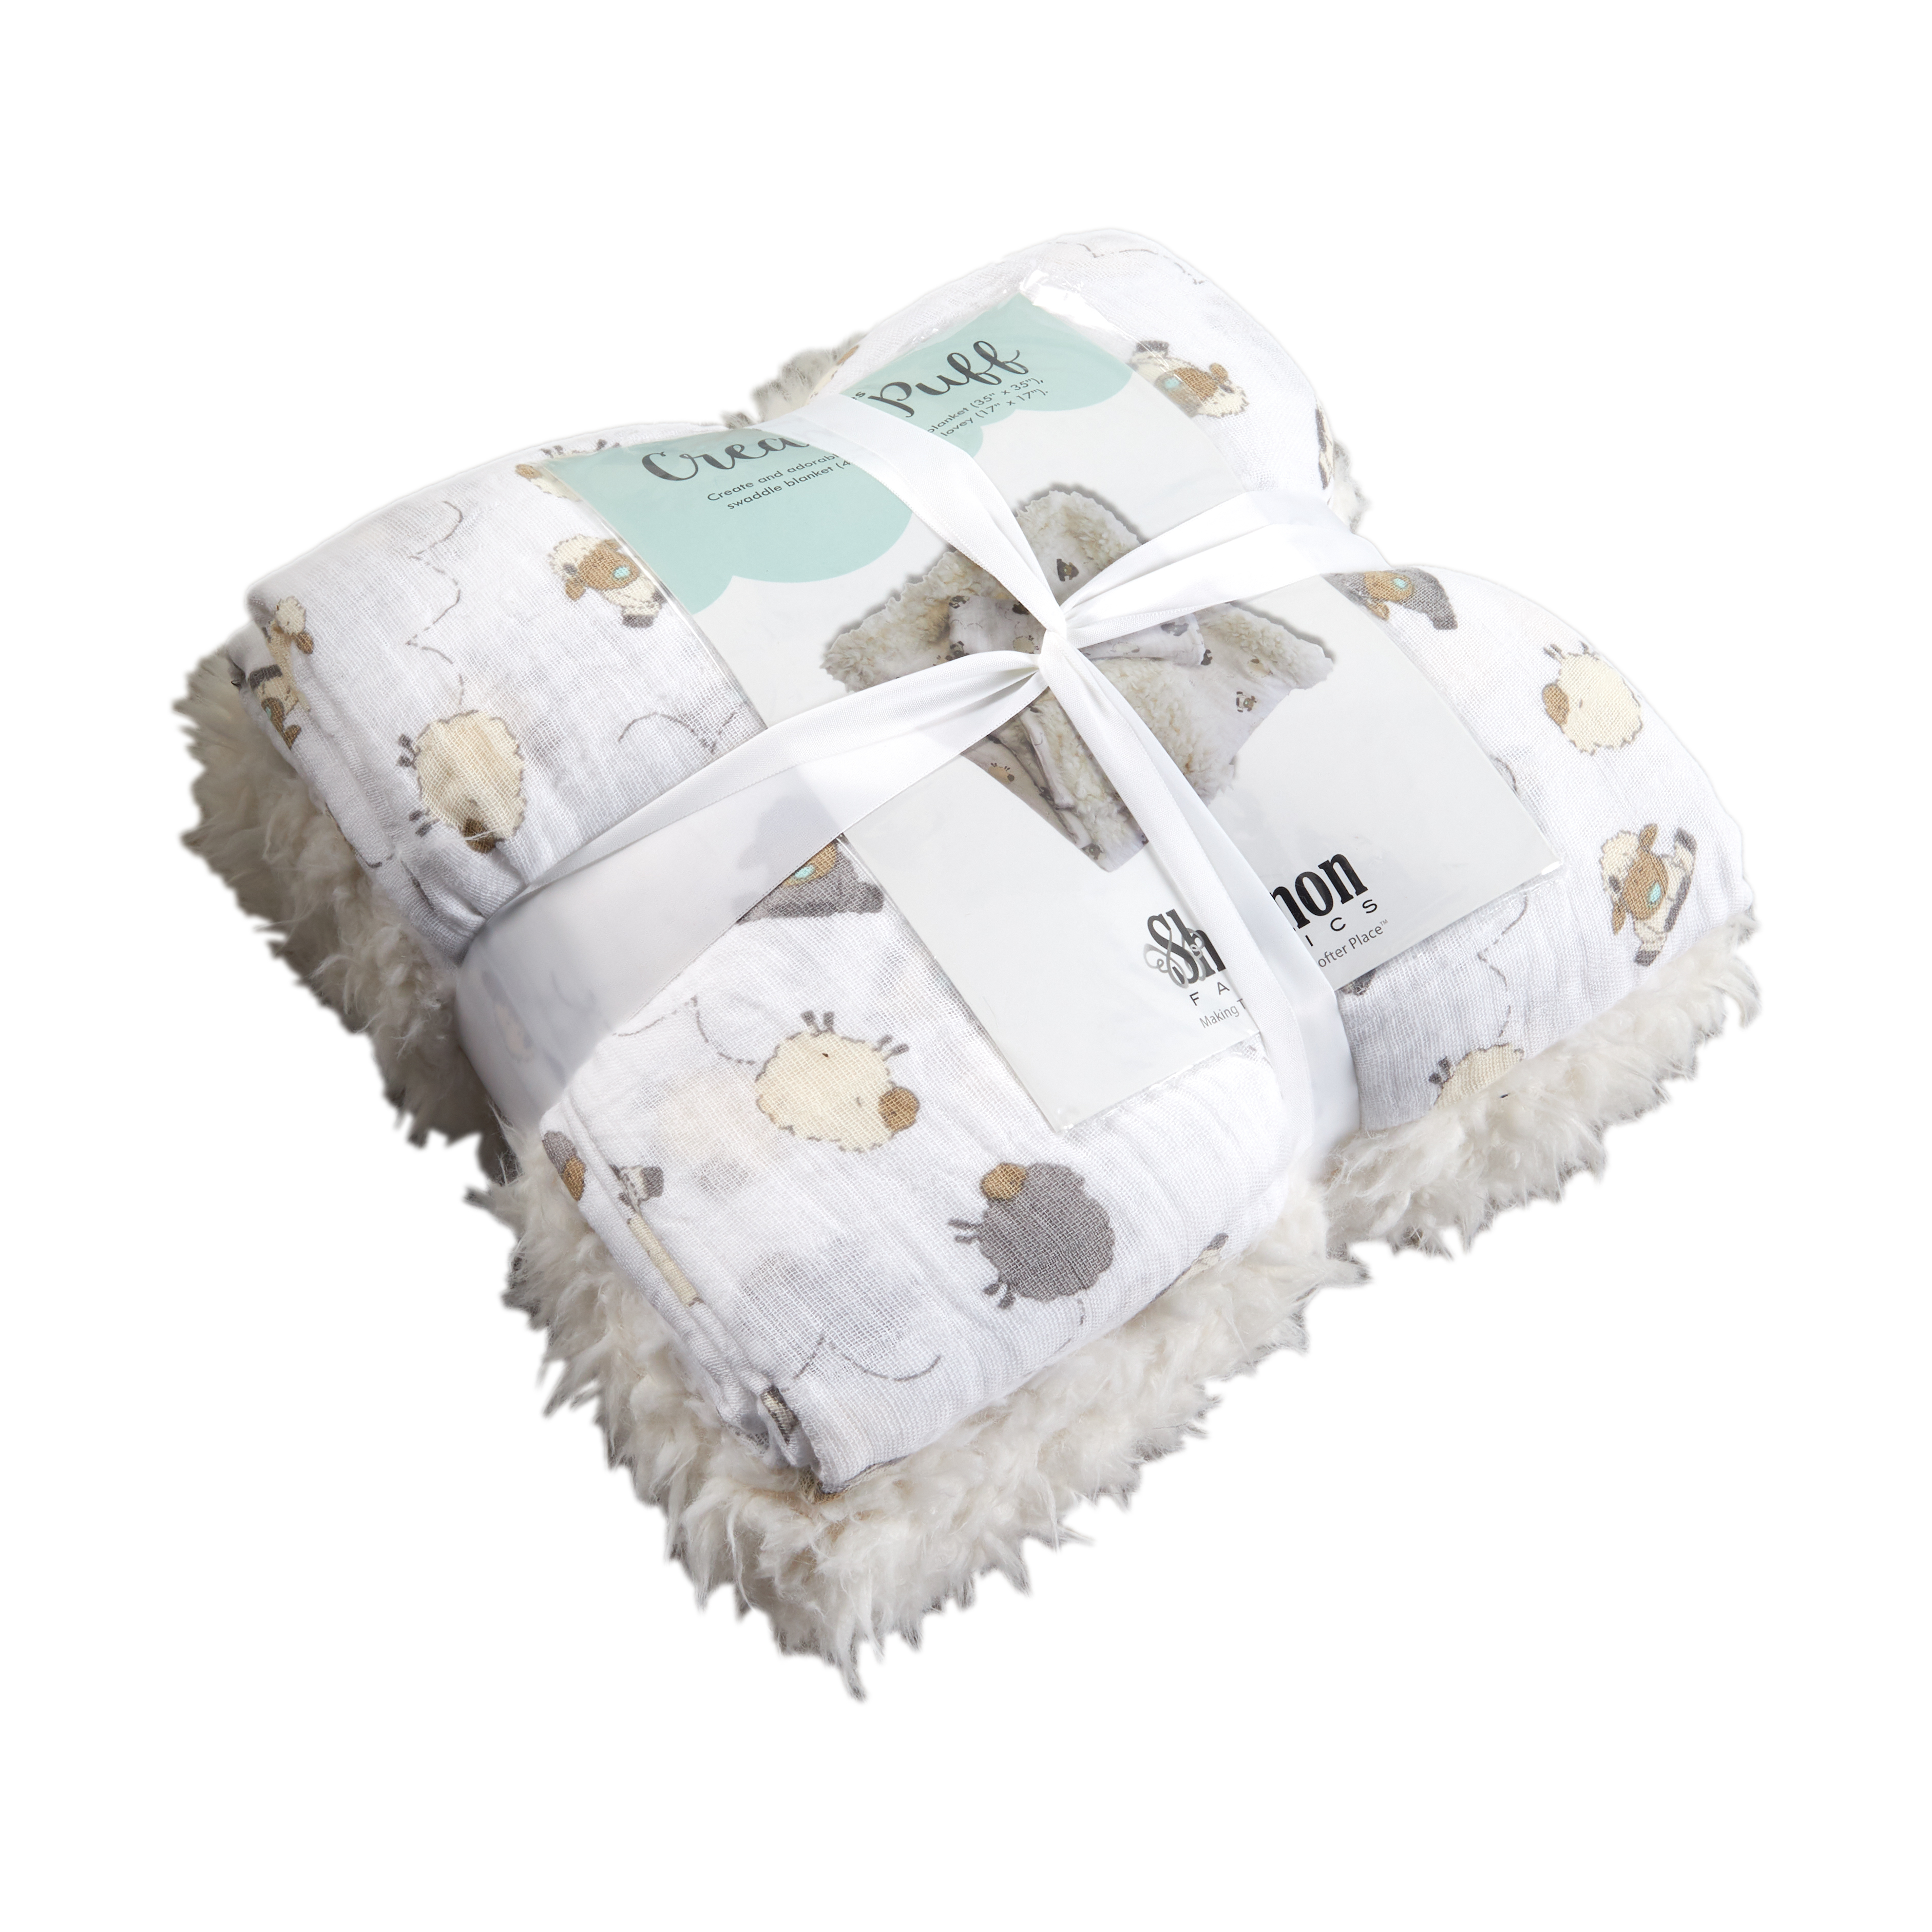 Shannon Patty Cakes Swaddle Gift Double Gauze Minky Set Kit Cream Puff by Shannon in USA